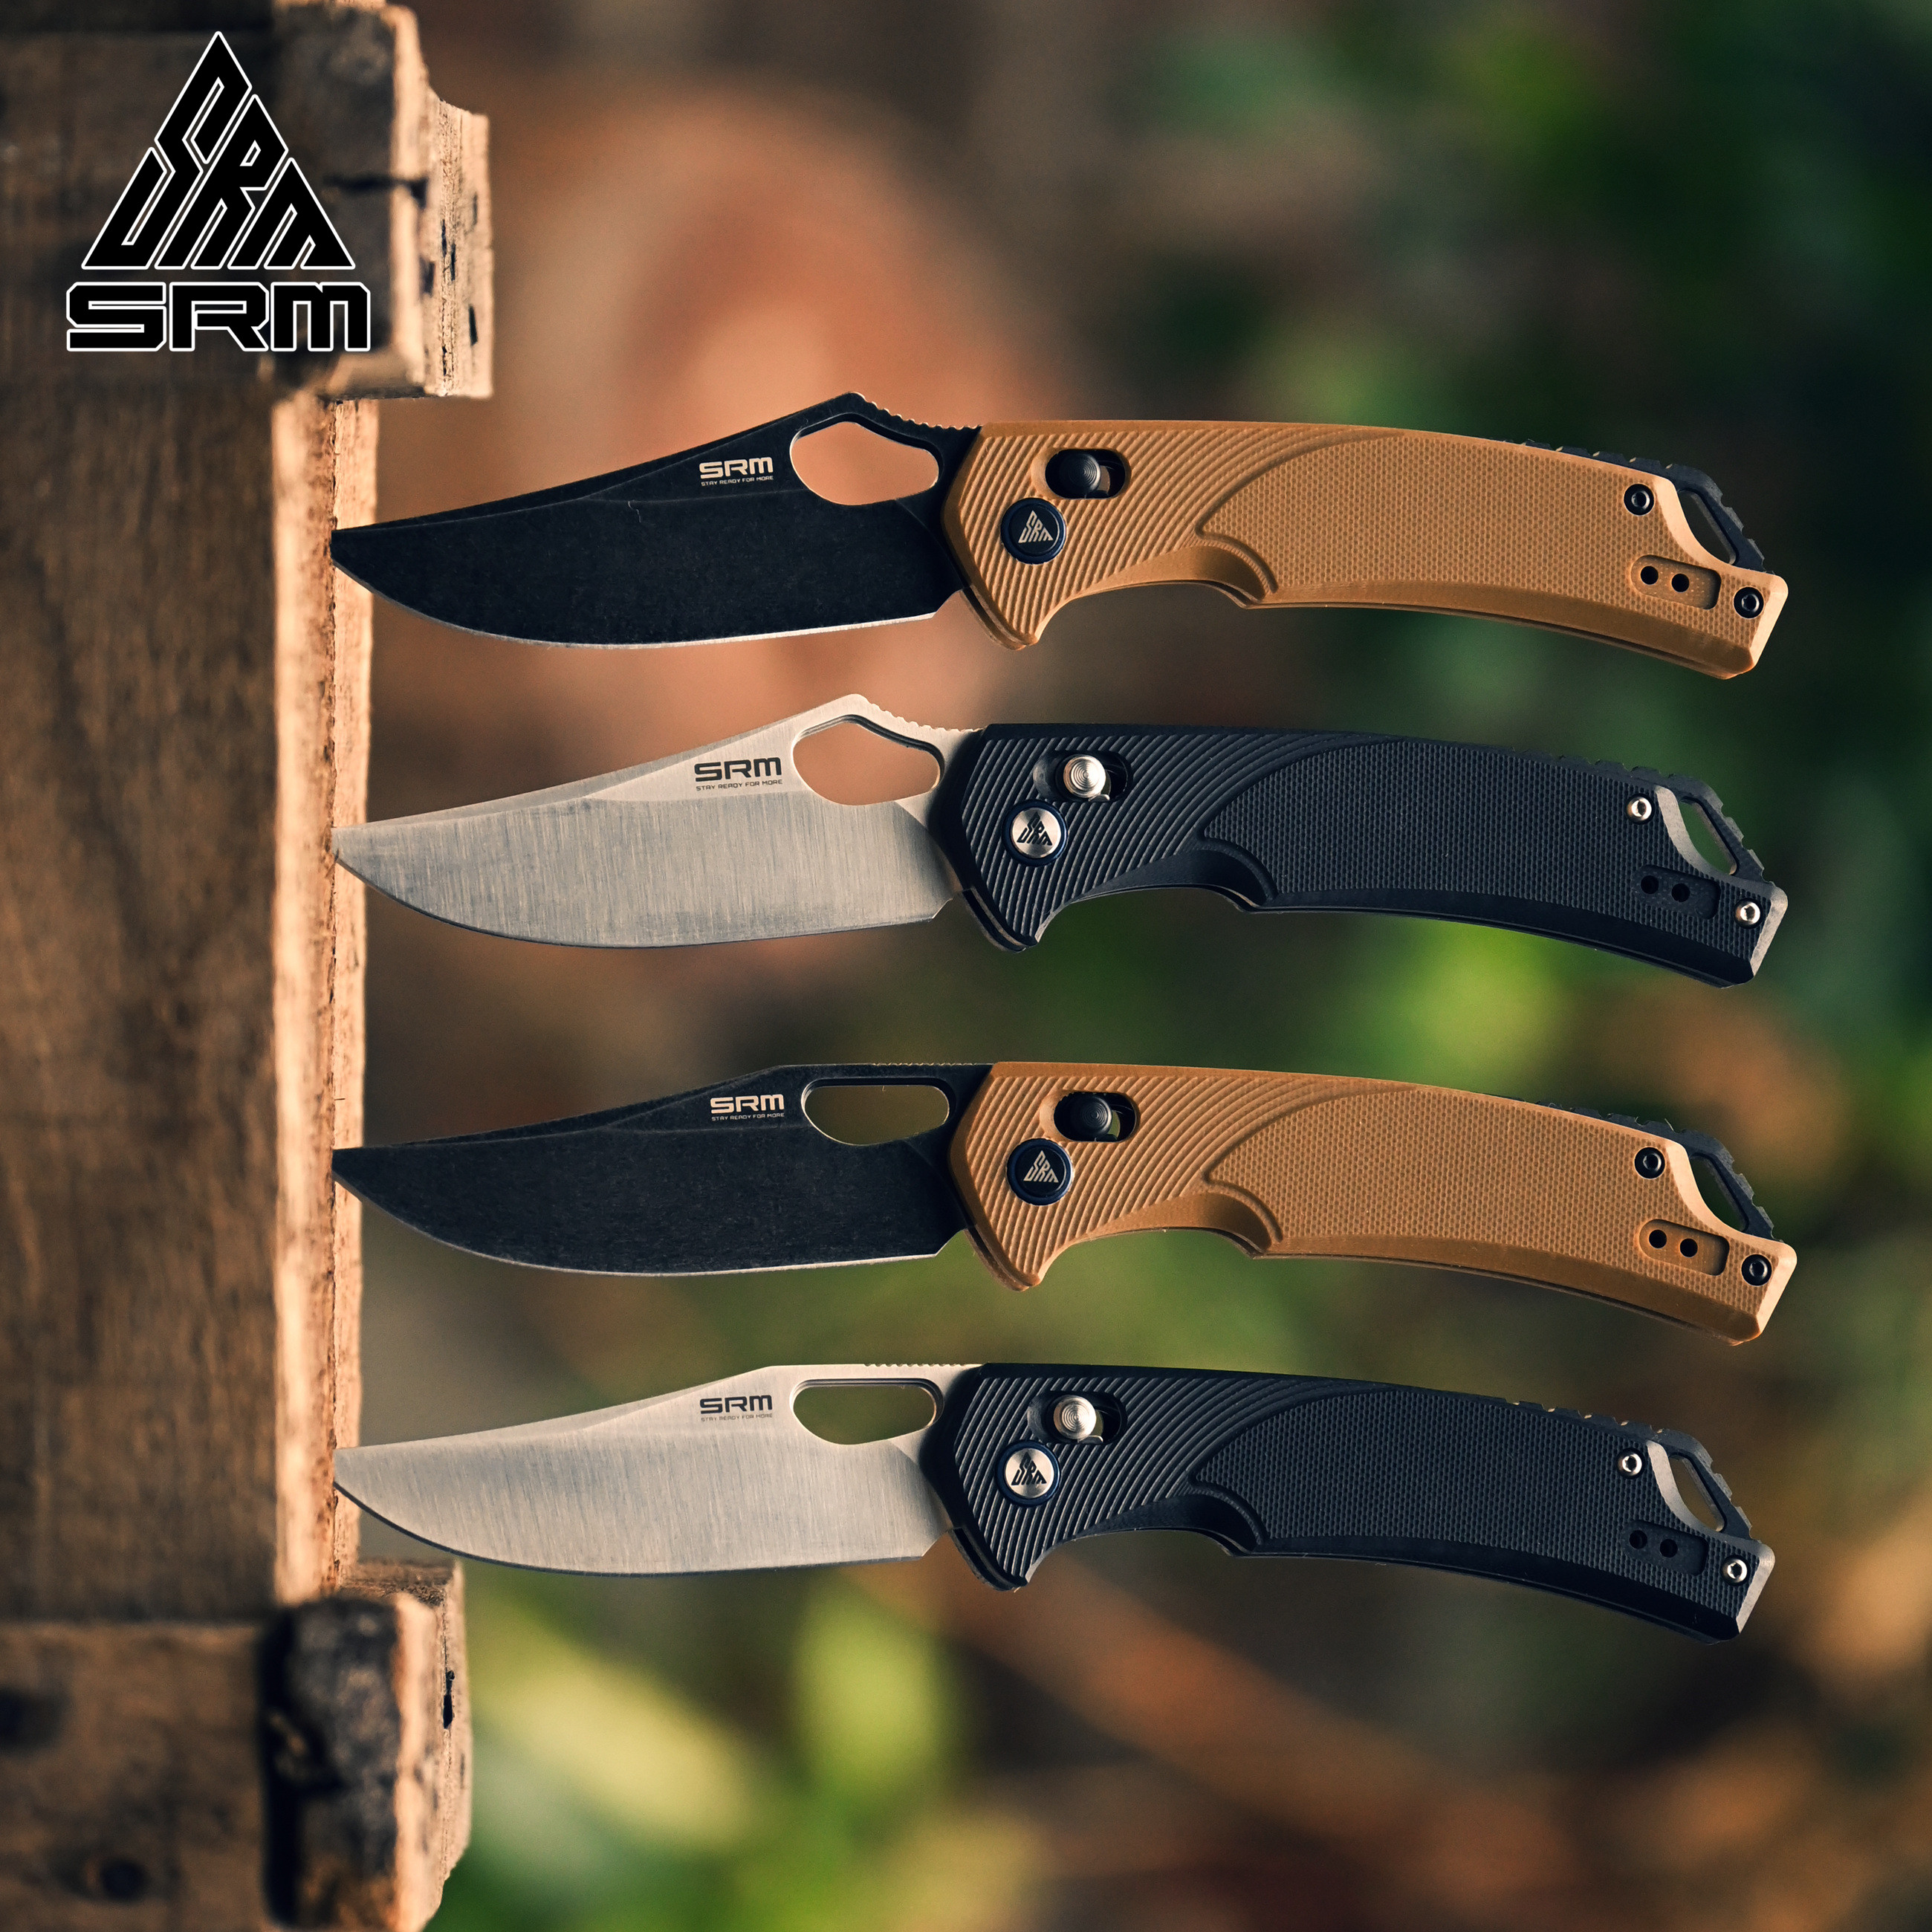 Hunting Pocket Knives D2 SRM Blade 9202 Axis EDC Outdoor 9201 NEW System Camping SANRENMU Knife Tool Tactical Folding Survival